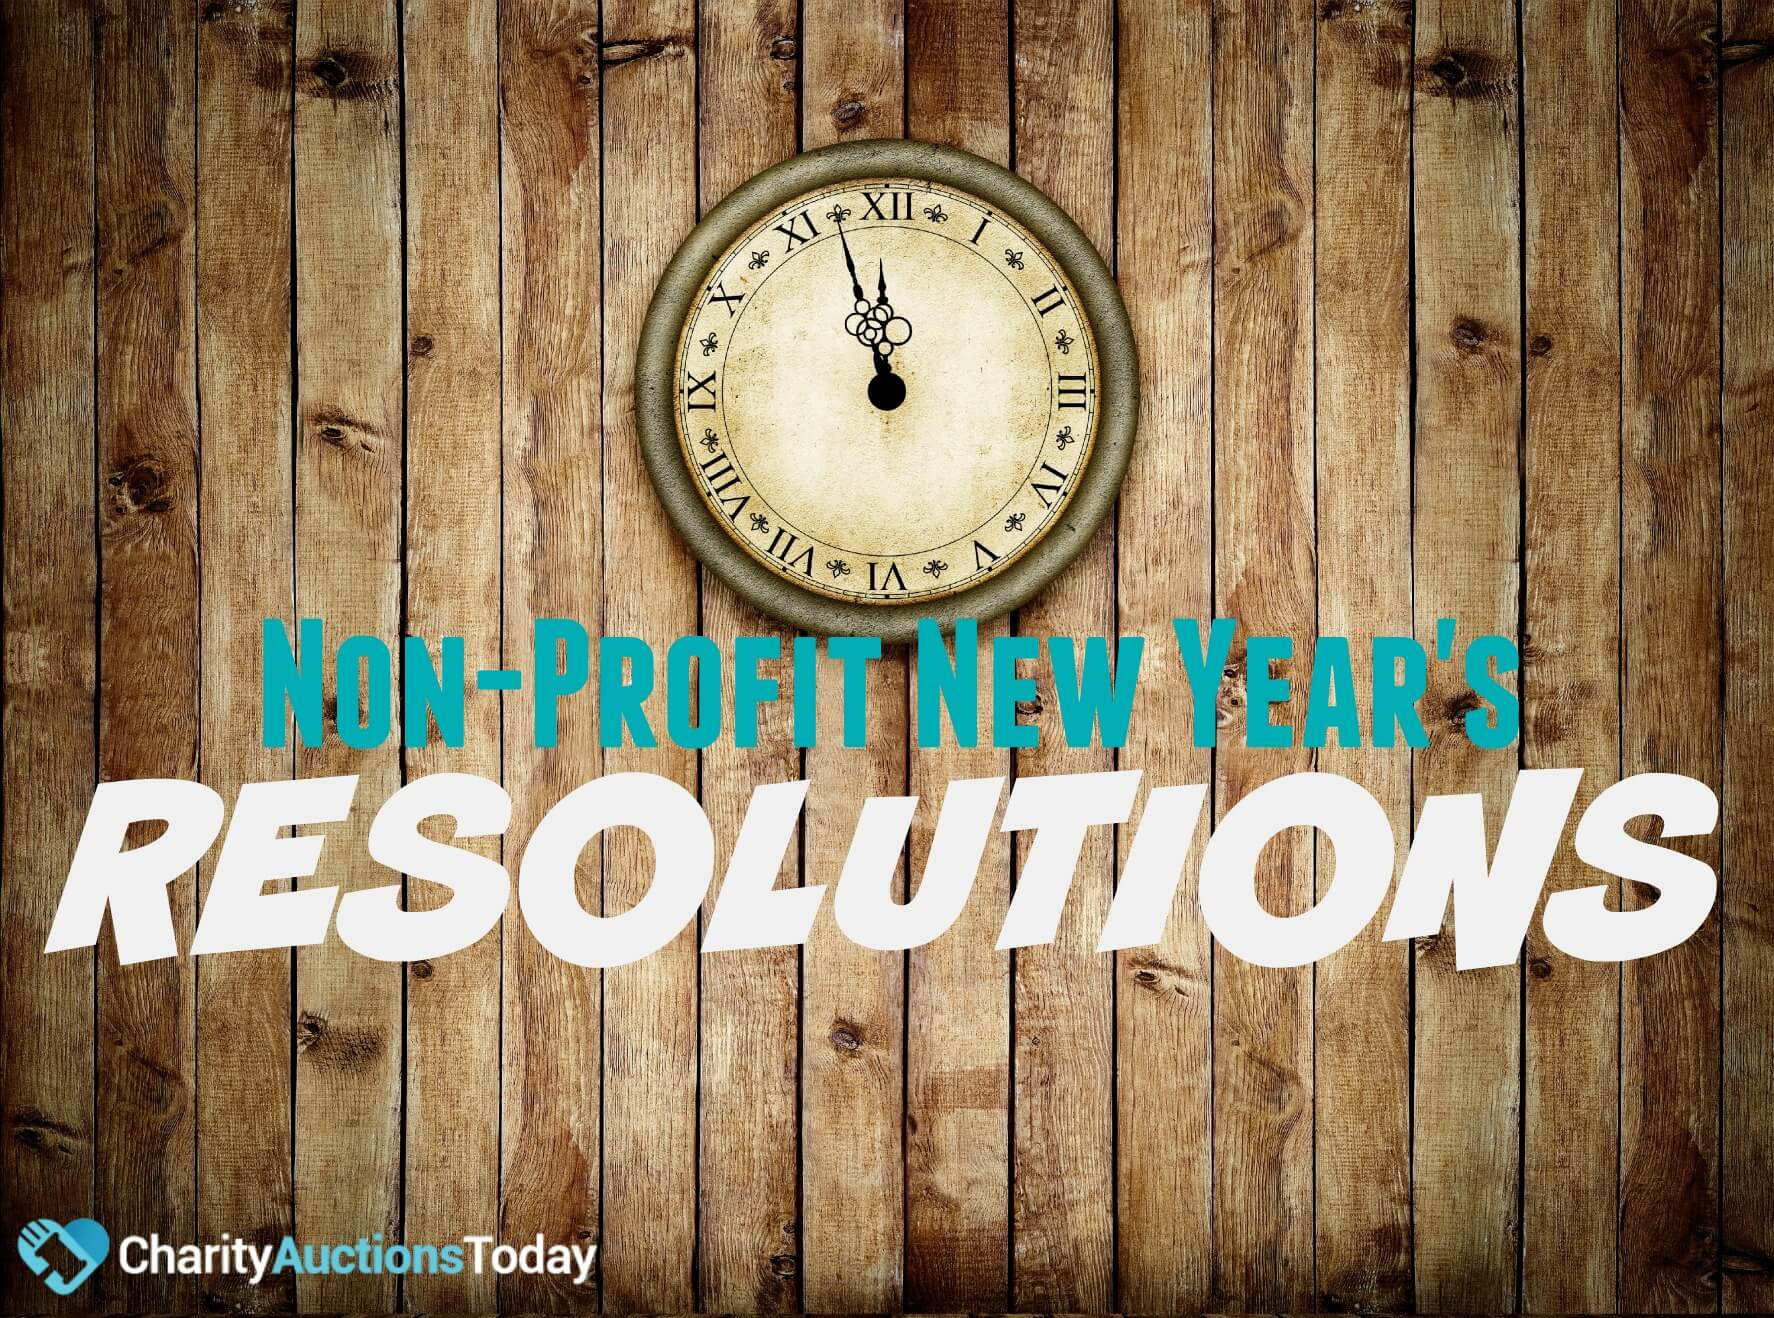 Nonprofit New Years Resolutions